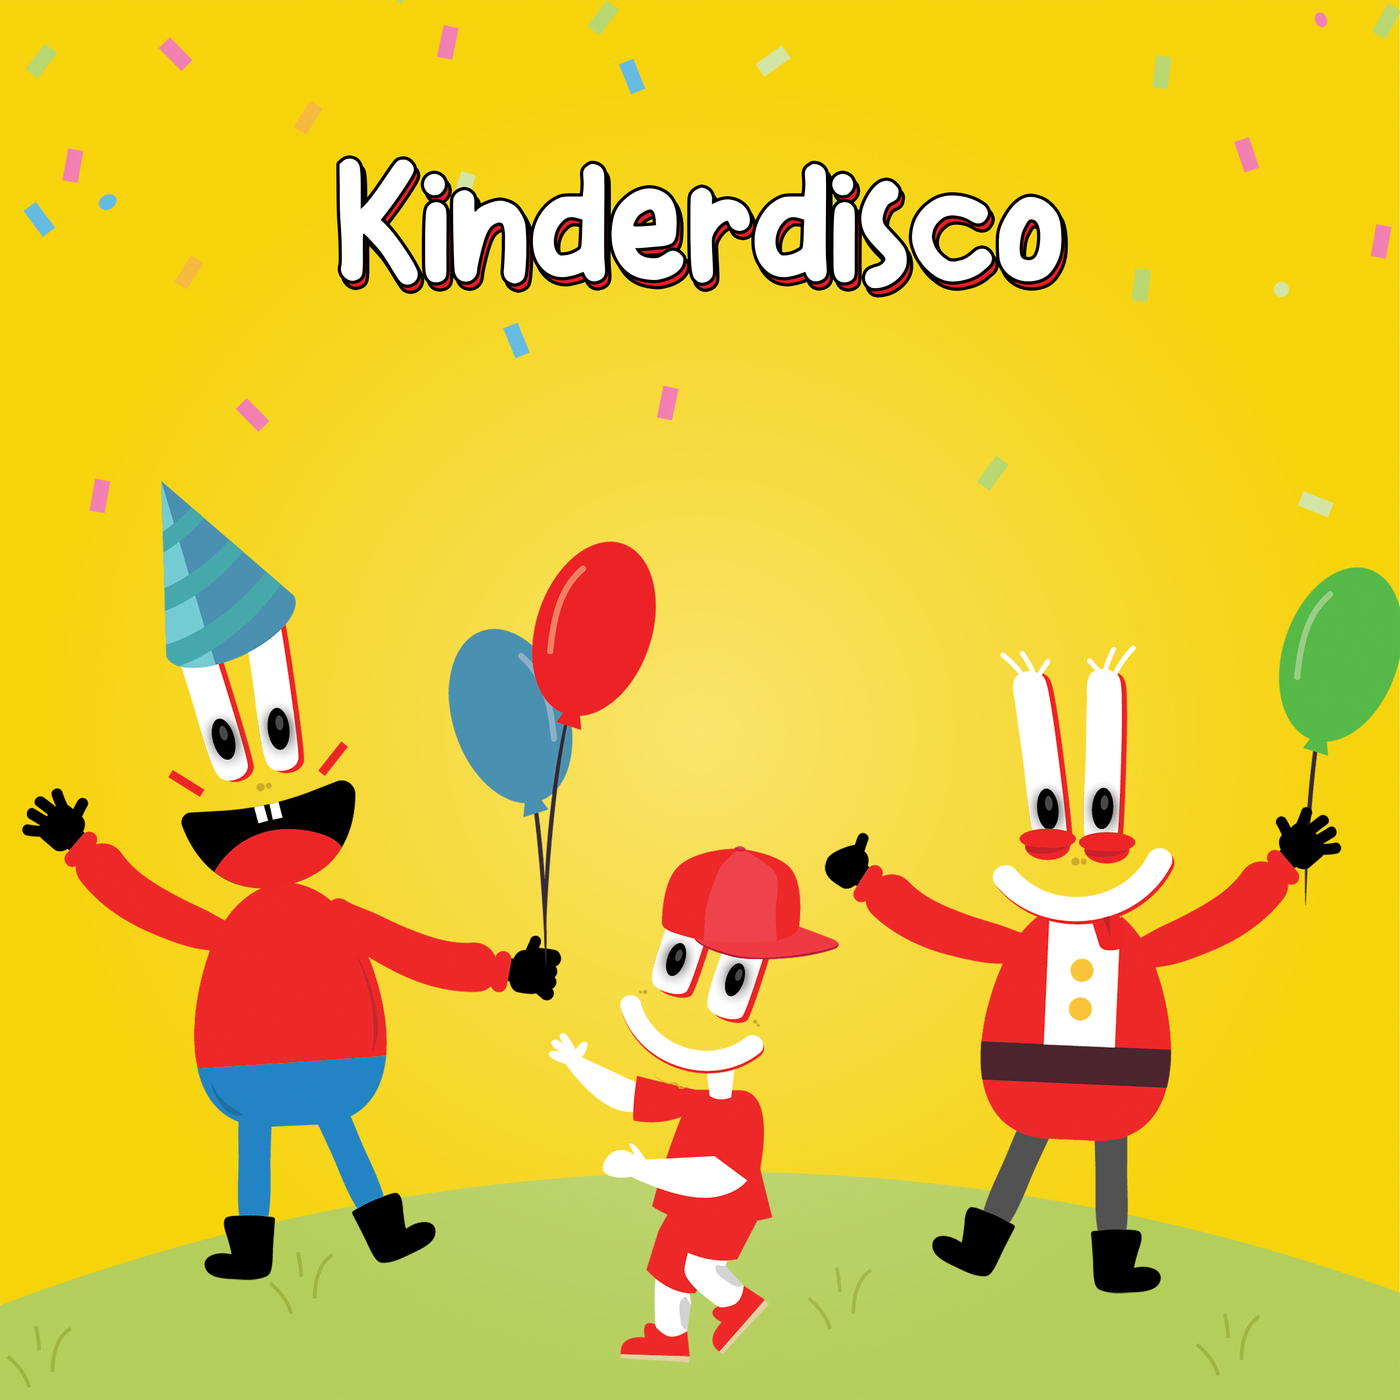 Kinderdisco - Alles Kids